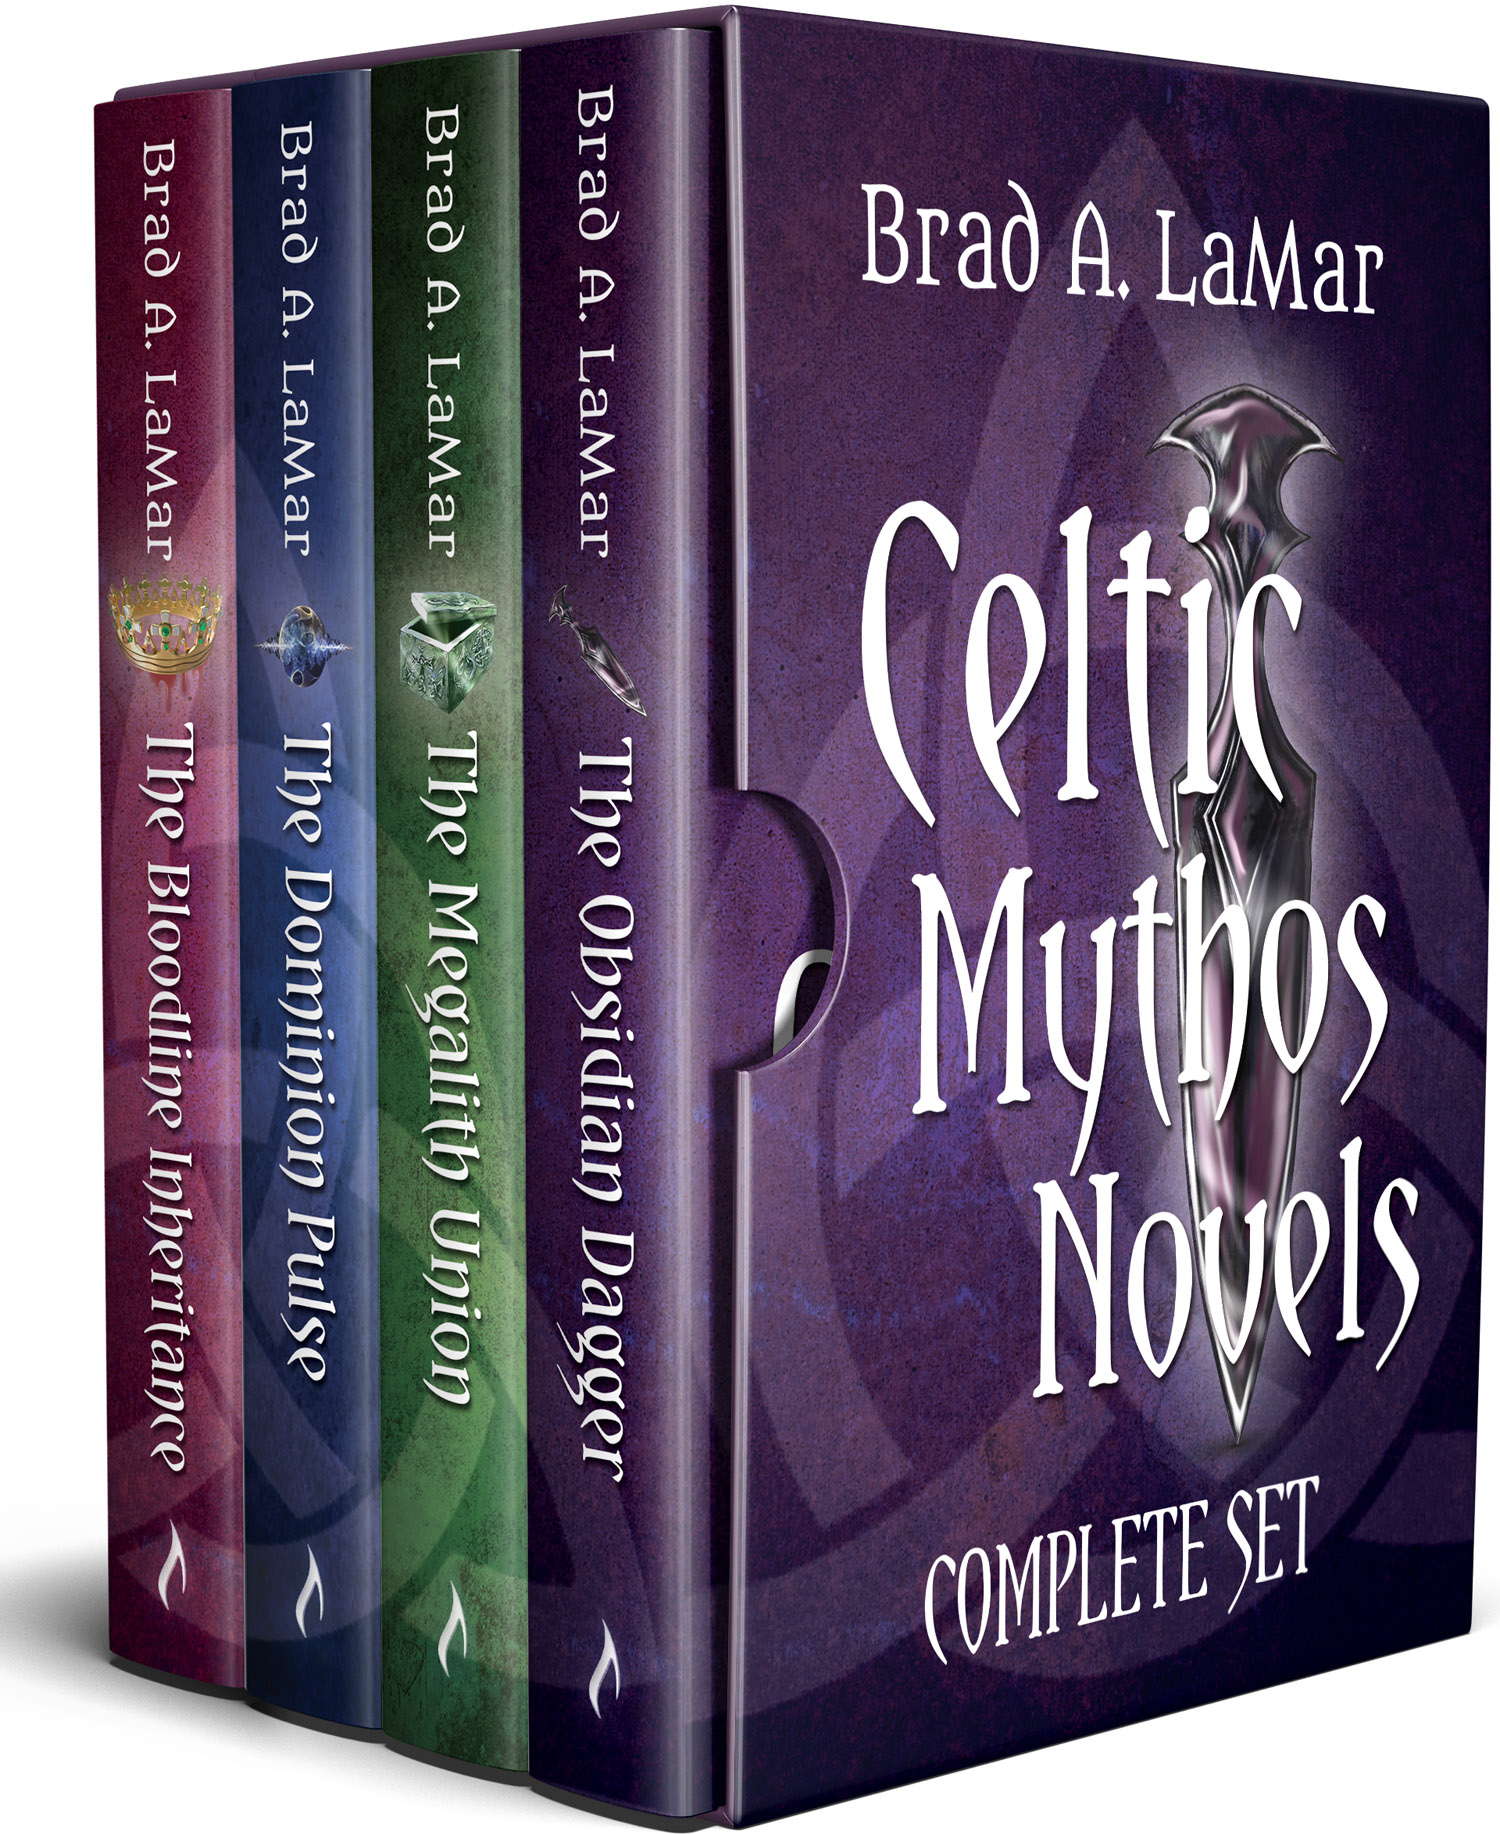 The Celtic Mythos Boxed Set